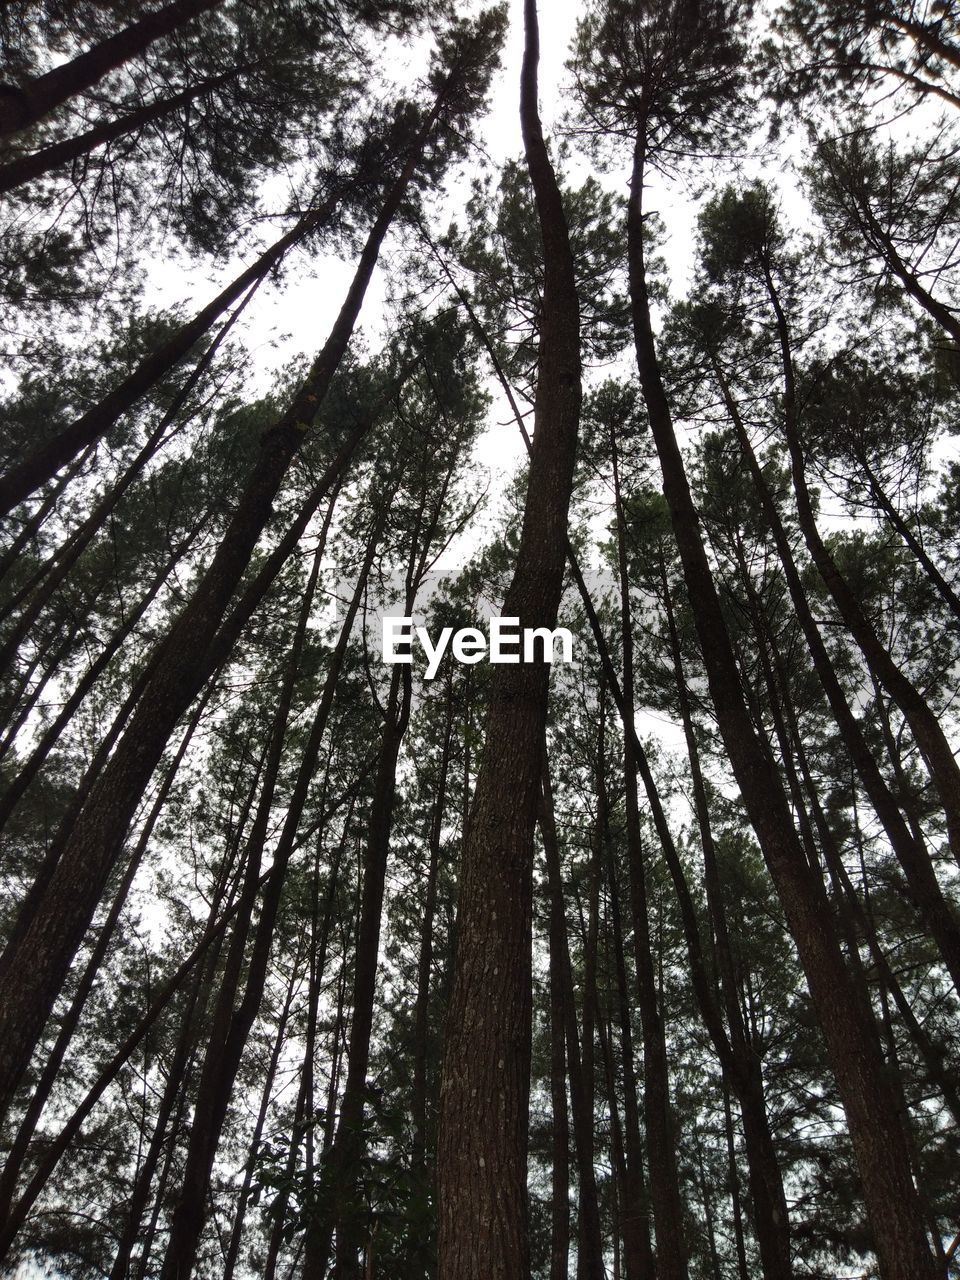 tree, plant, forest, low angle view, land, tree trunk, trunk, growth, woodland, tall - high, tranquility, beauty in nature, no people, nature, outdoors, day, sky, branch, tranquil scene, abundance, tree canopy, bamboo - plant, directly below